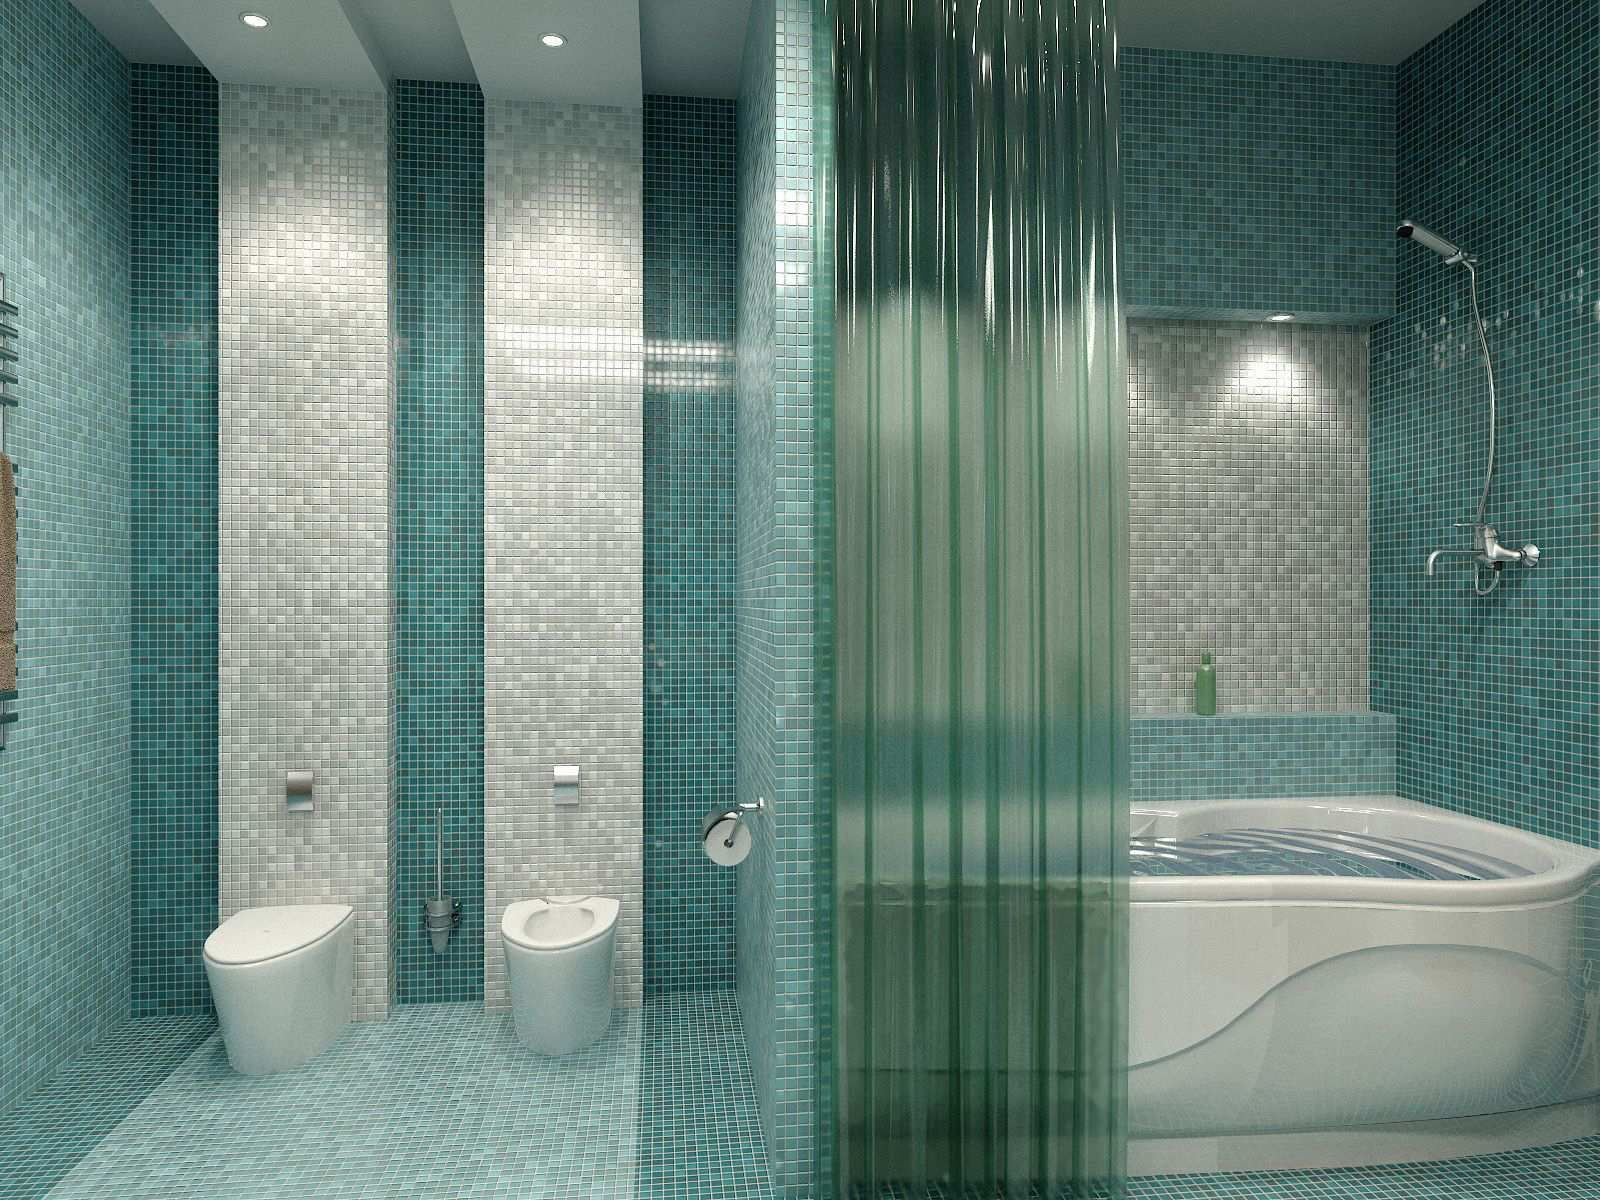 scientist bedroom decorating interior design bathroom office interior designers in mumbai - Bathroom Designs In Mumbai